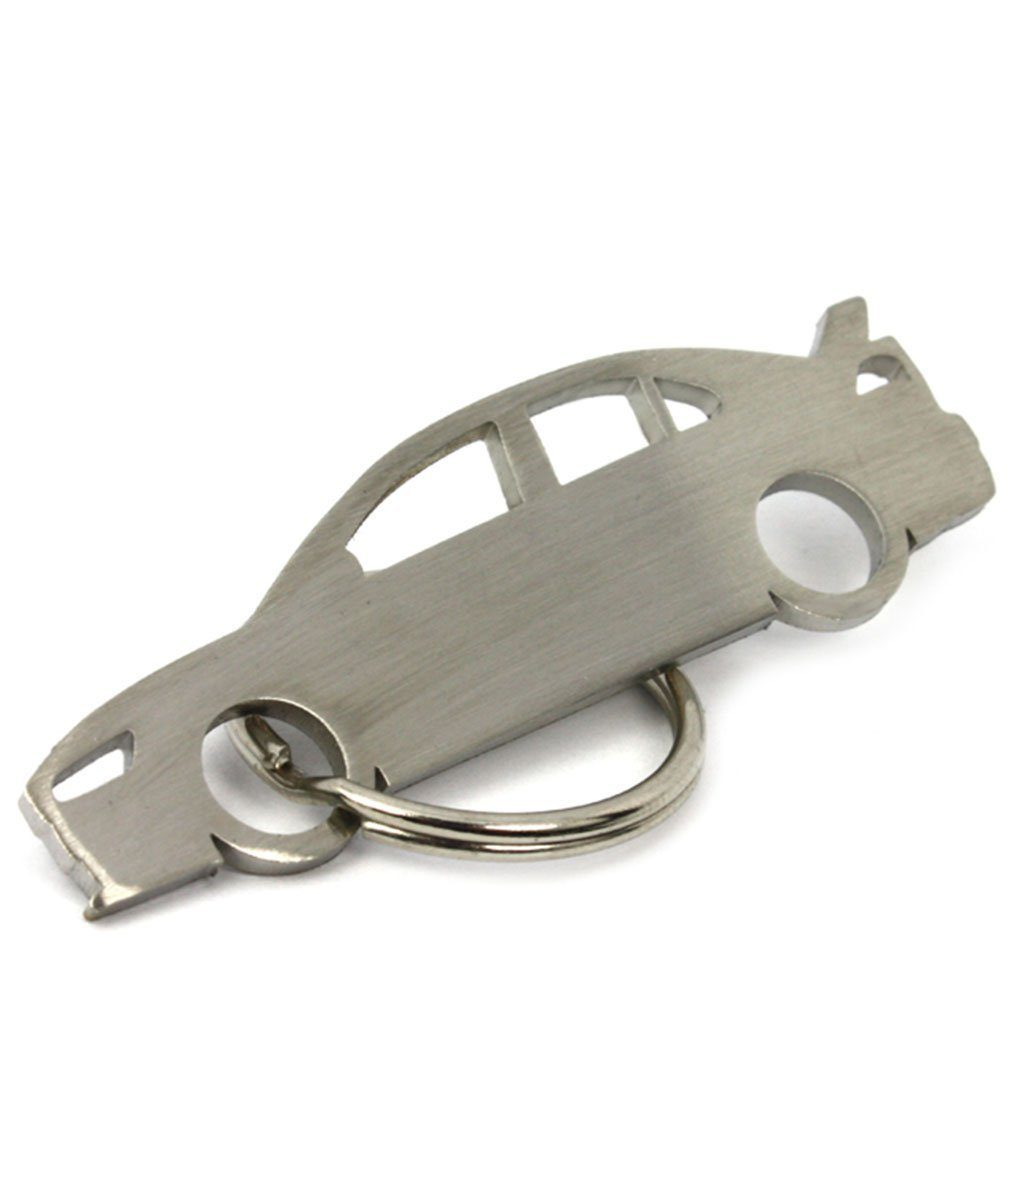 Key Ring - Mitsubishi Evo X Key Ring